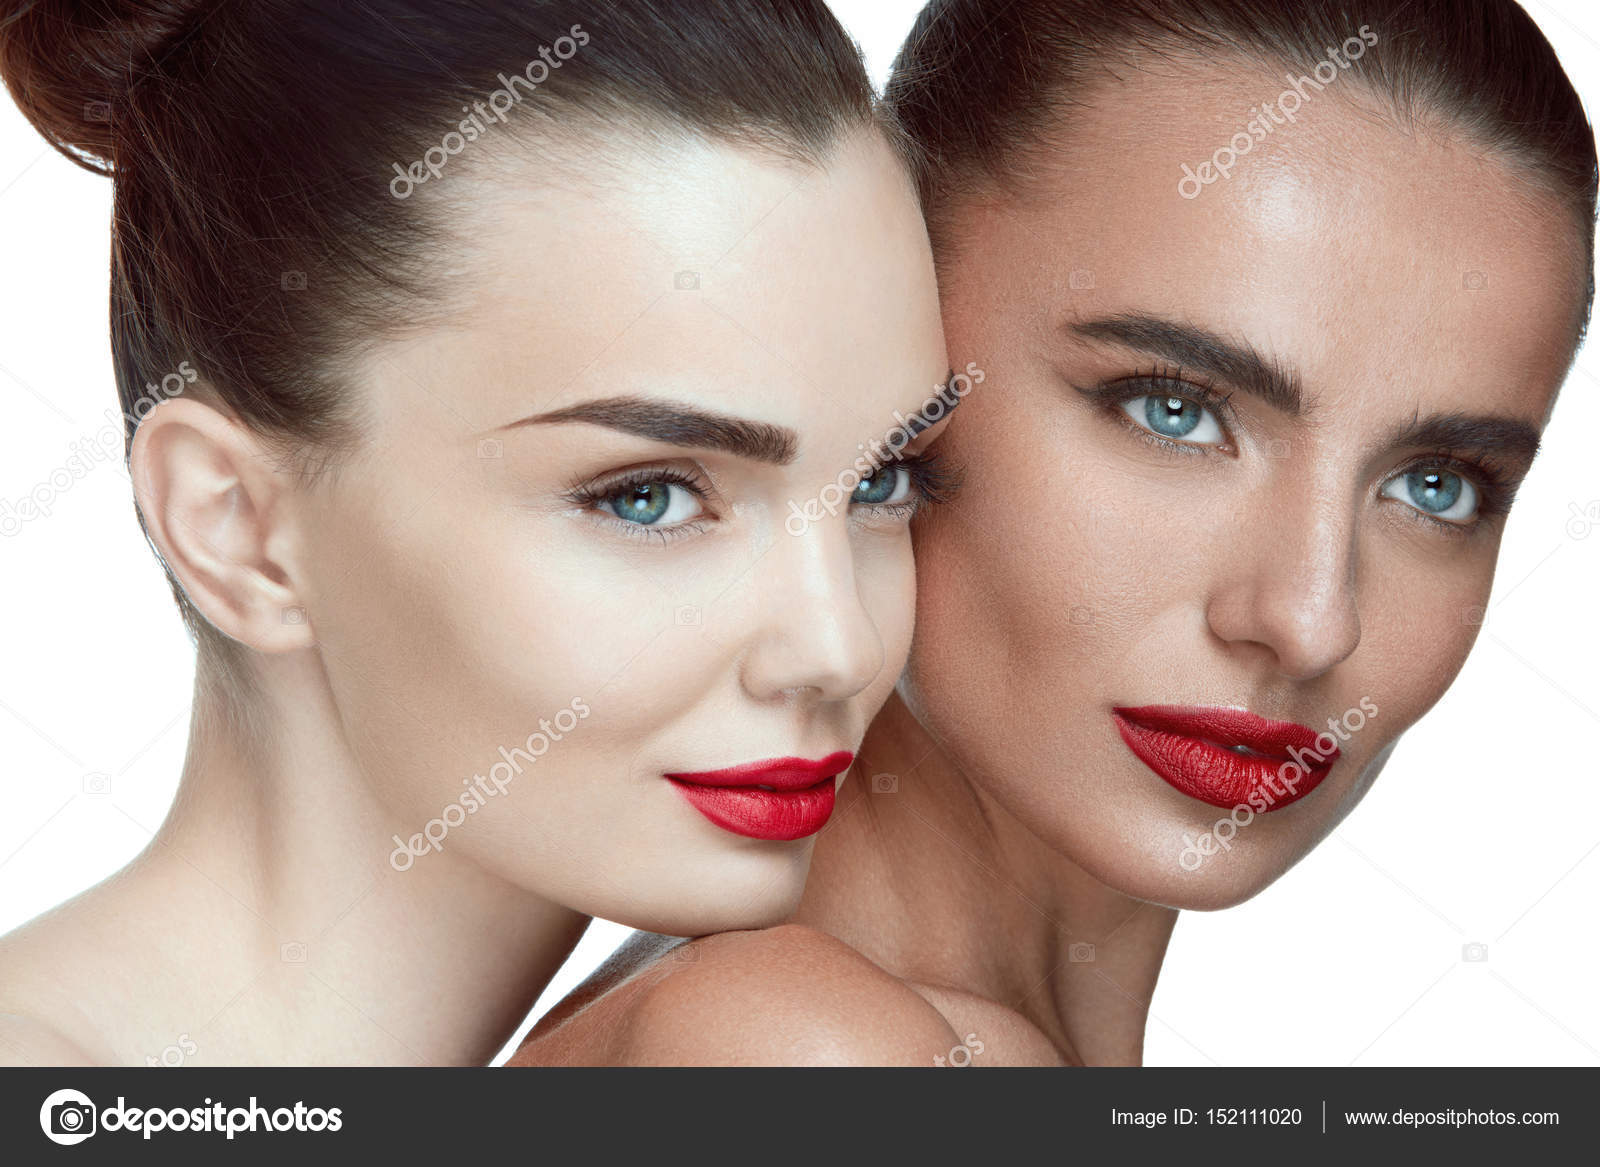 Woman Beauty Faces. Female Models With Glamour Facial Makeup, Fresh Soft  Healthy Skin And Glamorous Red Lips. Closeup Portrait Of Beautiful Sexy  Young Girls ...